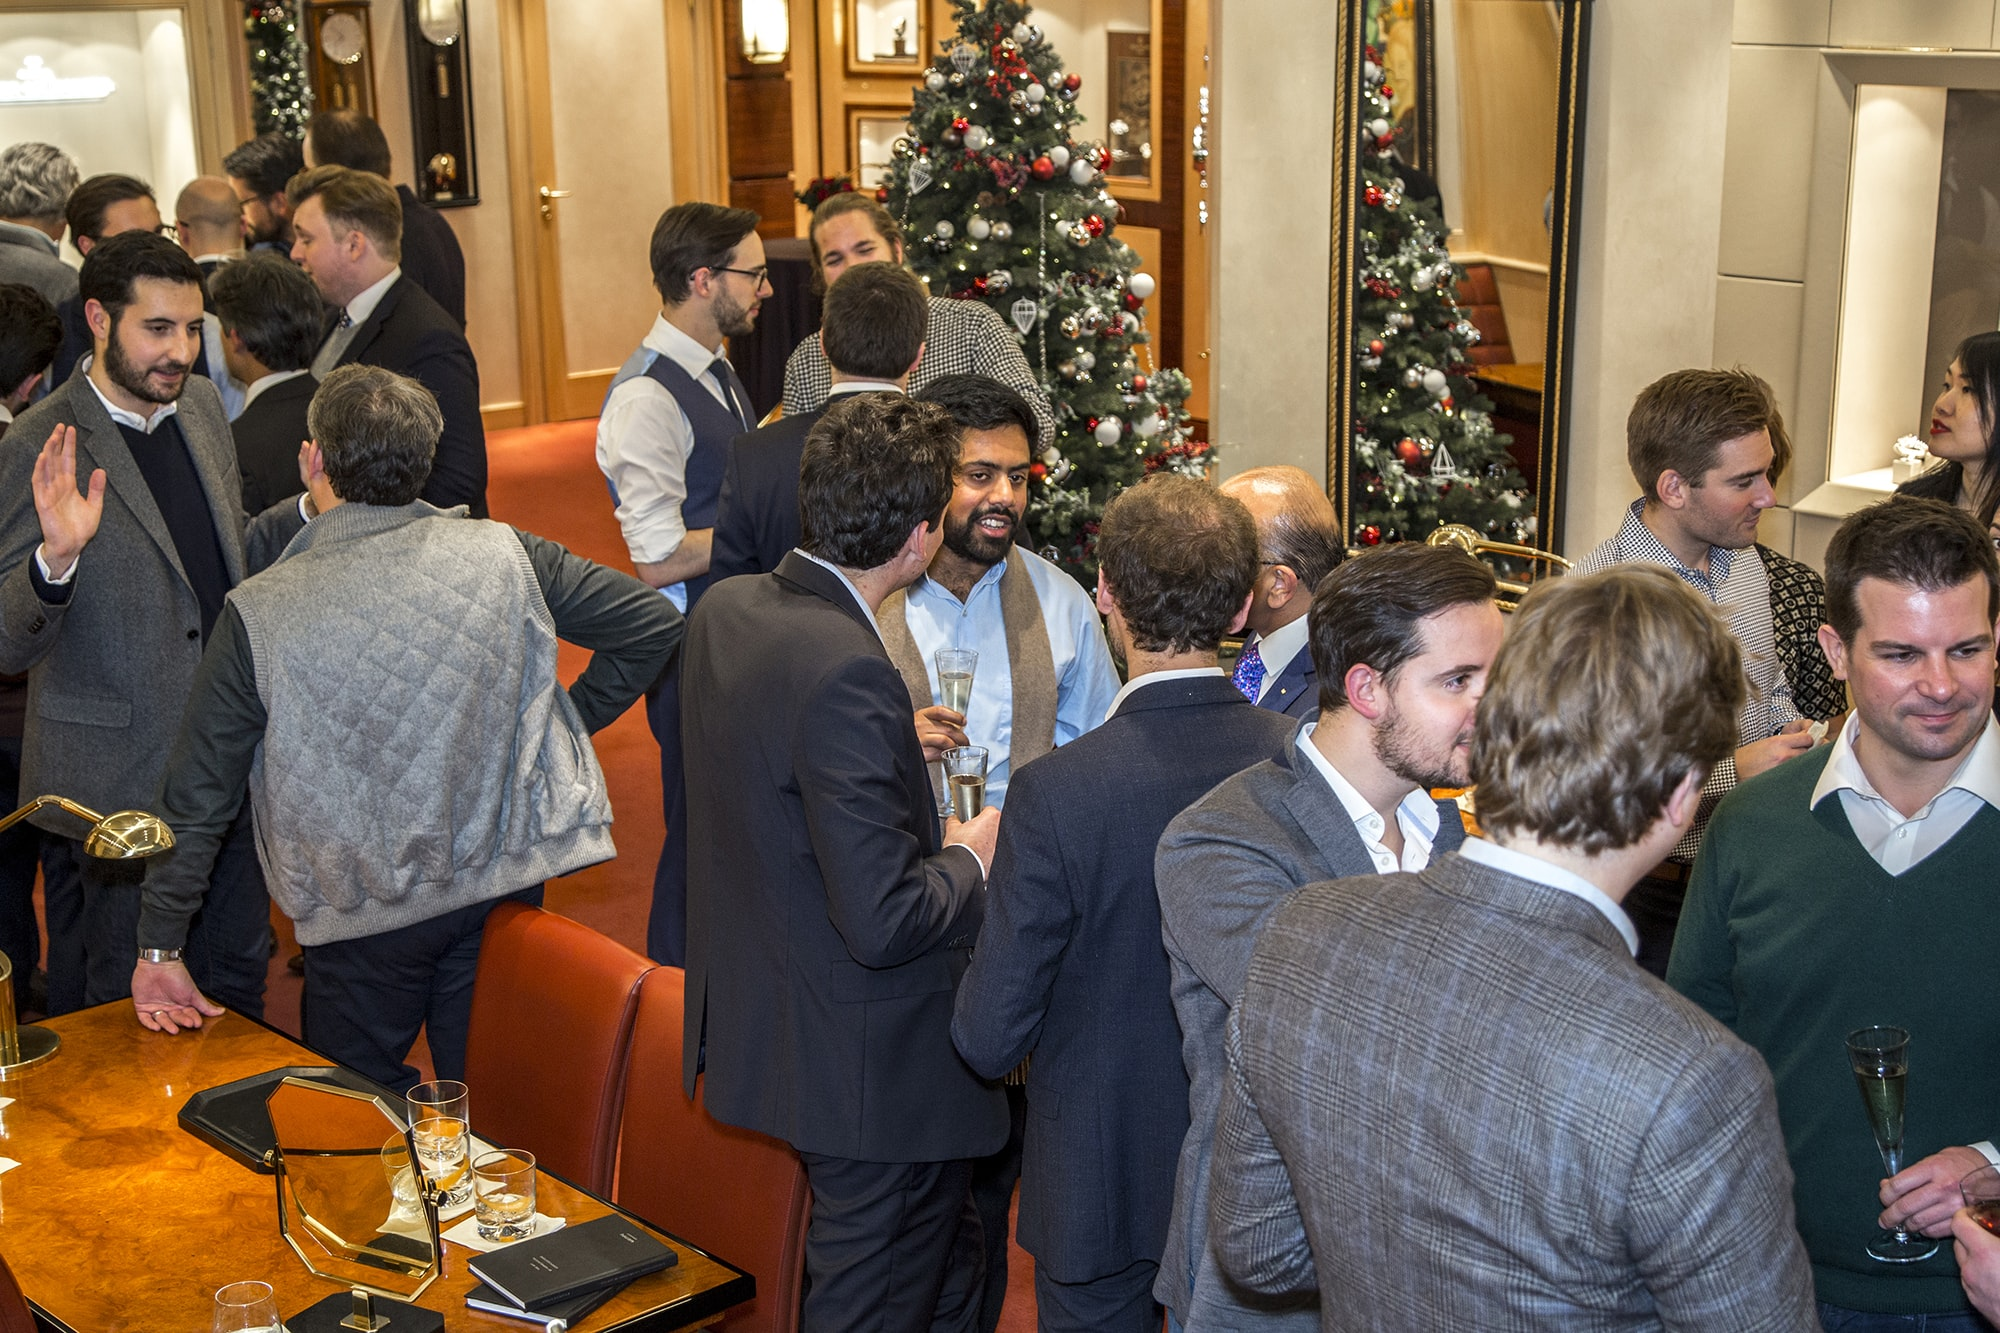 Photo Report: HODINKEE Hosts A Collector Get-Together At The Wempe Boutique In London Photo Report: HODINKEE Hosts A Collector Get-Together At The Wempe Boutique In London 55555